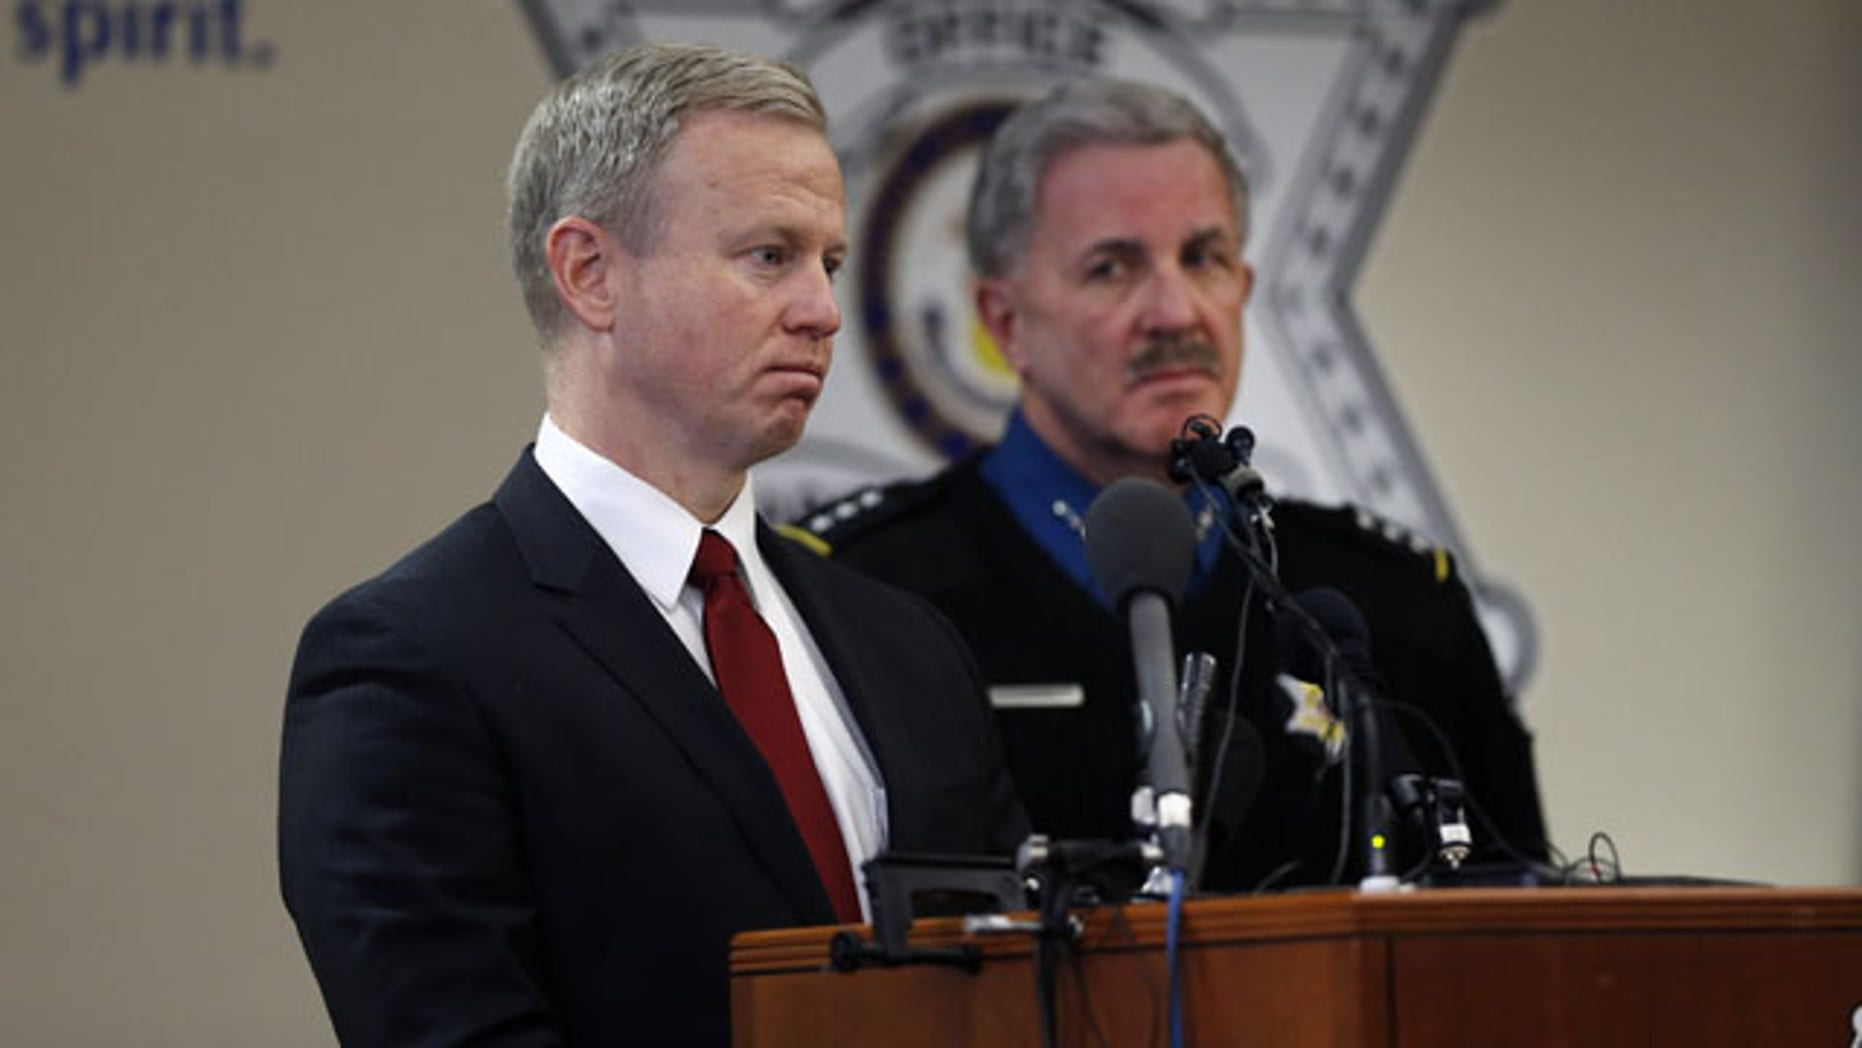 December 30, 2013: District Attorney for the 18th Judicial District George Brauchler, left, and Arapahoe County Sheriff Grayson Robinson take questions during a news conference at which they and other officials discussed the investigation into the Dec. 13 shooting at Arapahoe High School in Centennial, Colo. (AP Photo)